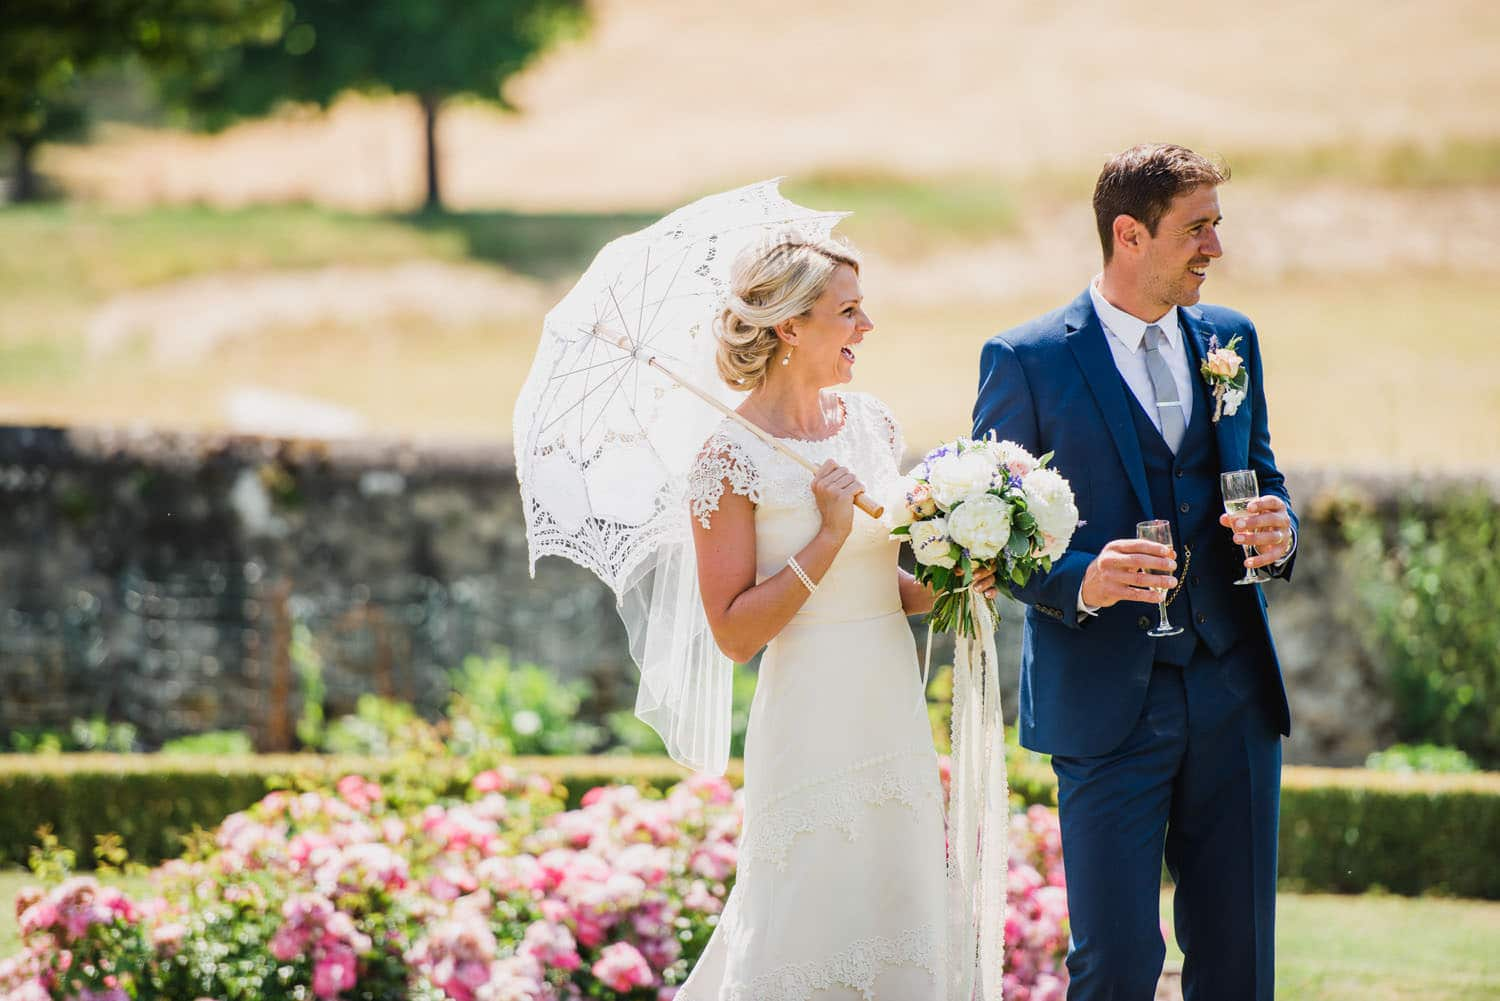 bride with white parasol in France